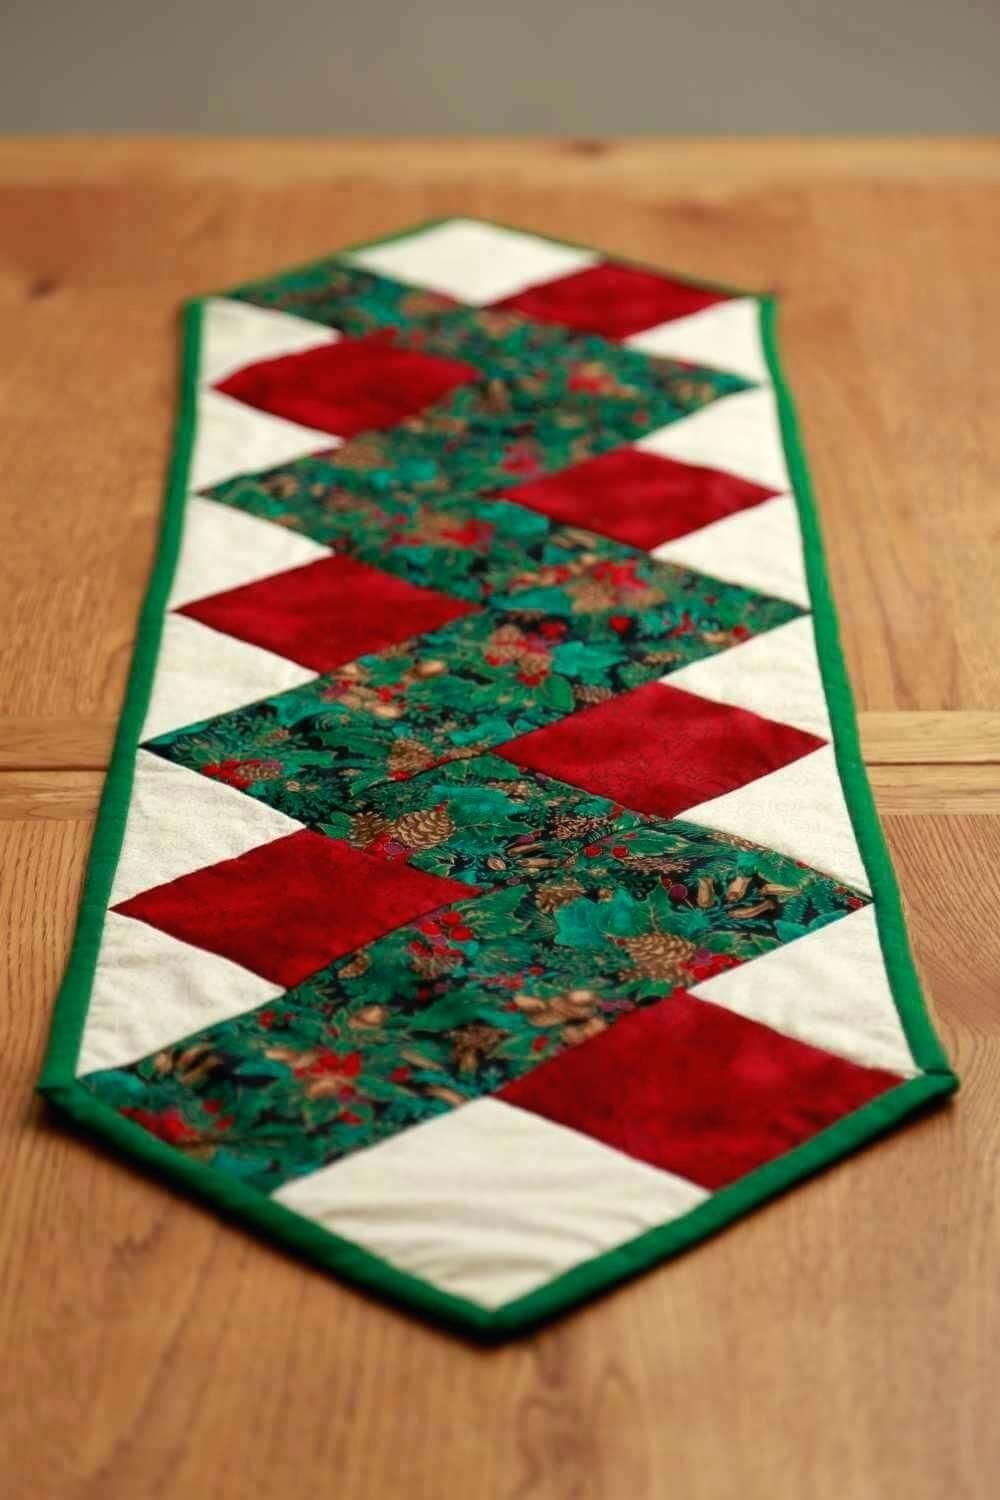 Christmas Table Runners Target Easy Runner Patterns Free 120 Inches Long Quilted Table Runners Christmas Quilted Table Runners Patterns Patchwork Table Runner